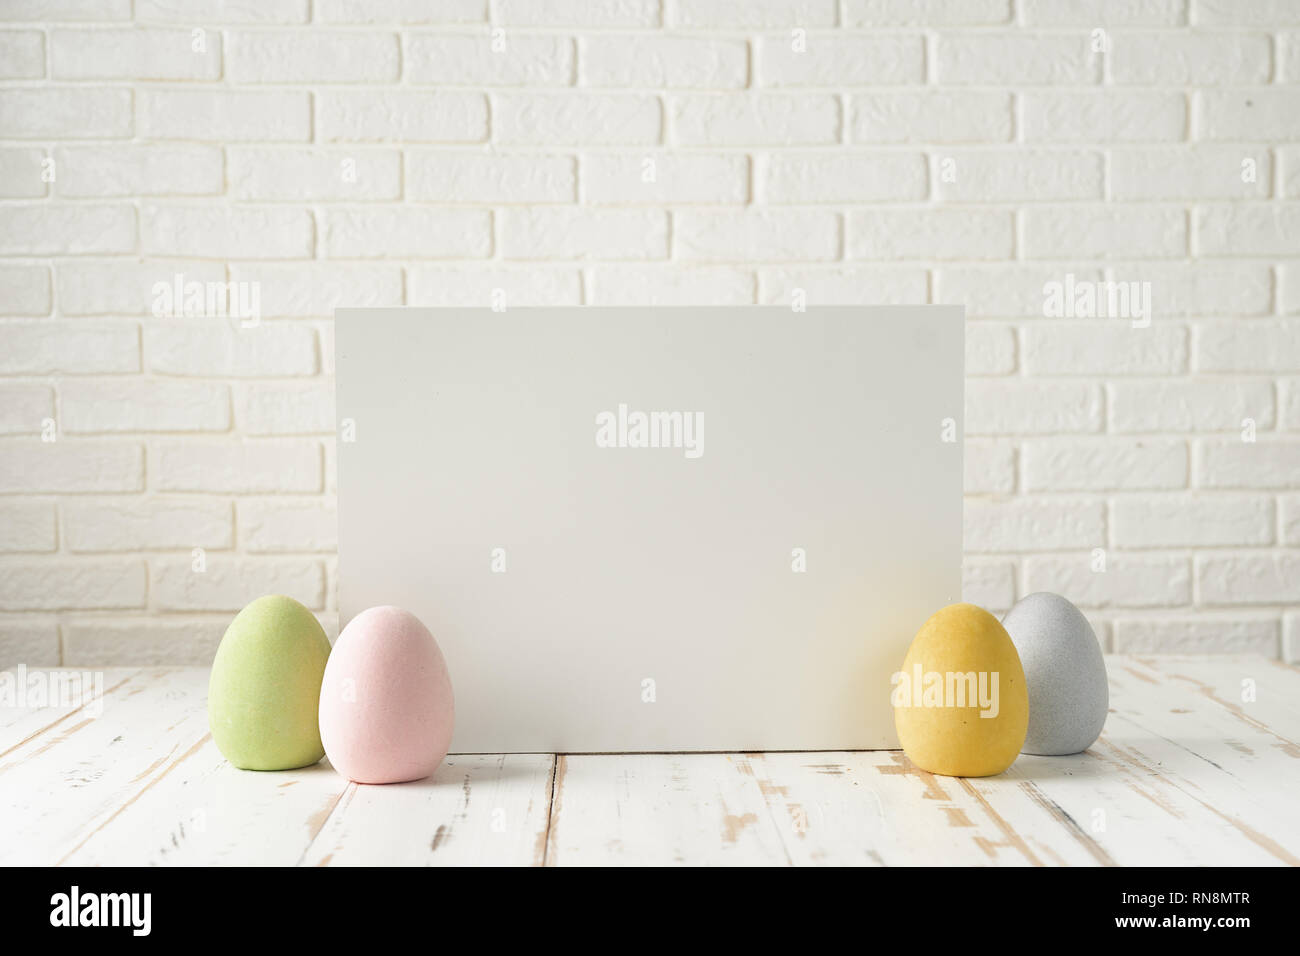 Easter composition with eggs, white board against white bricks wall Stock Photo